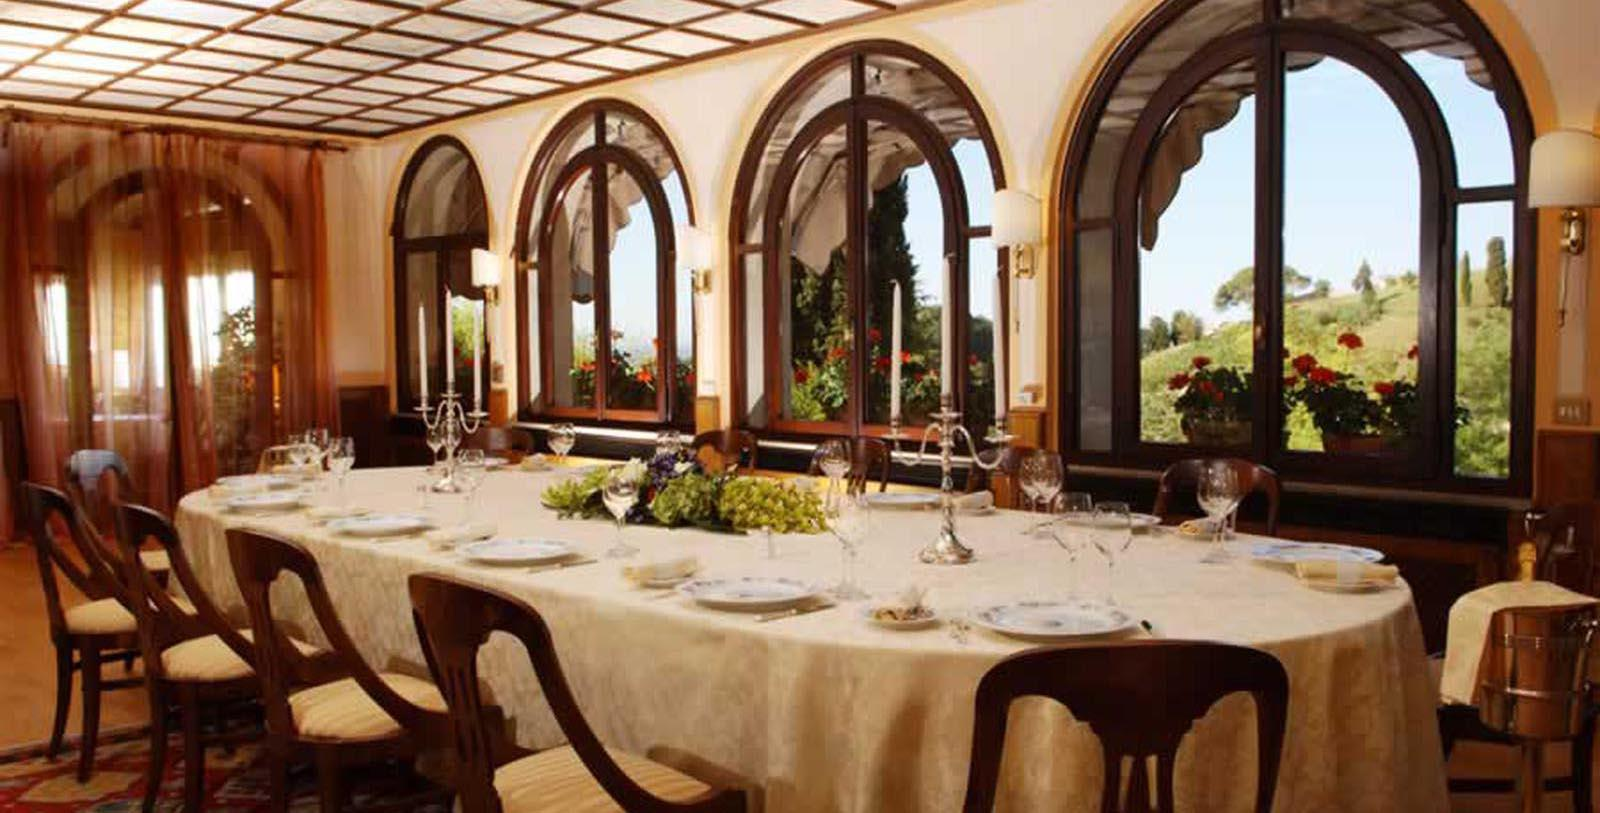 Image of Villa Cipriani Restaurant Hotel Villa Cipriani, 1889, Member of Historic Hotels Worldwide, in Asolo, Italy, Special Occasions